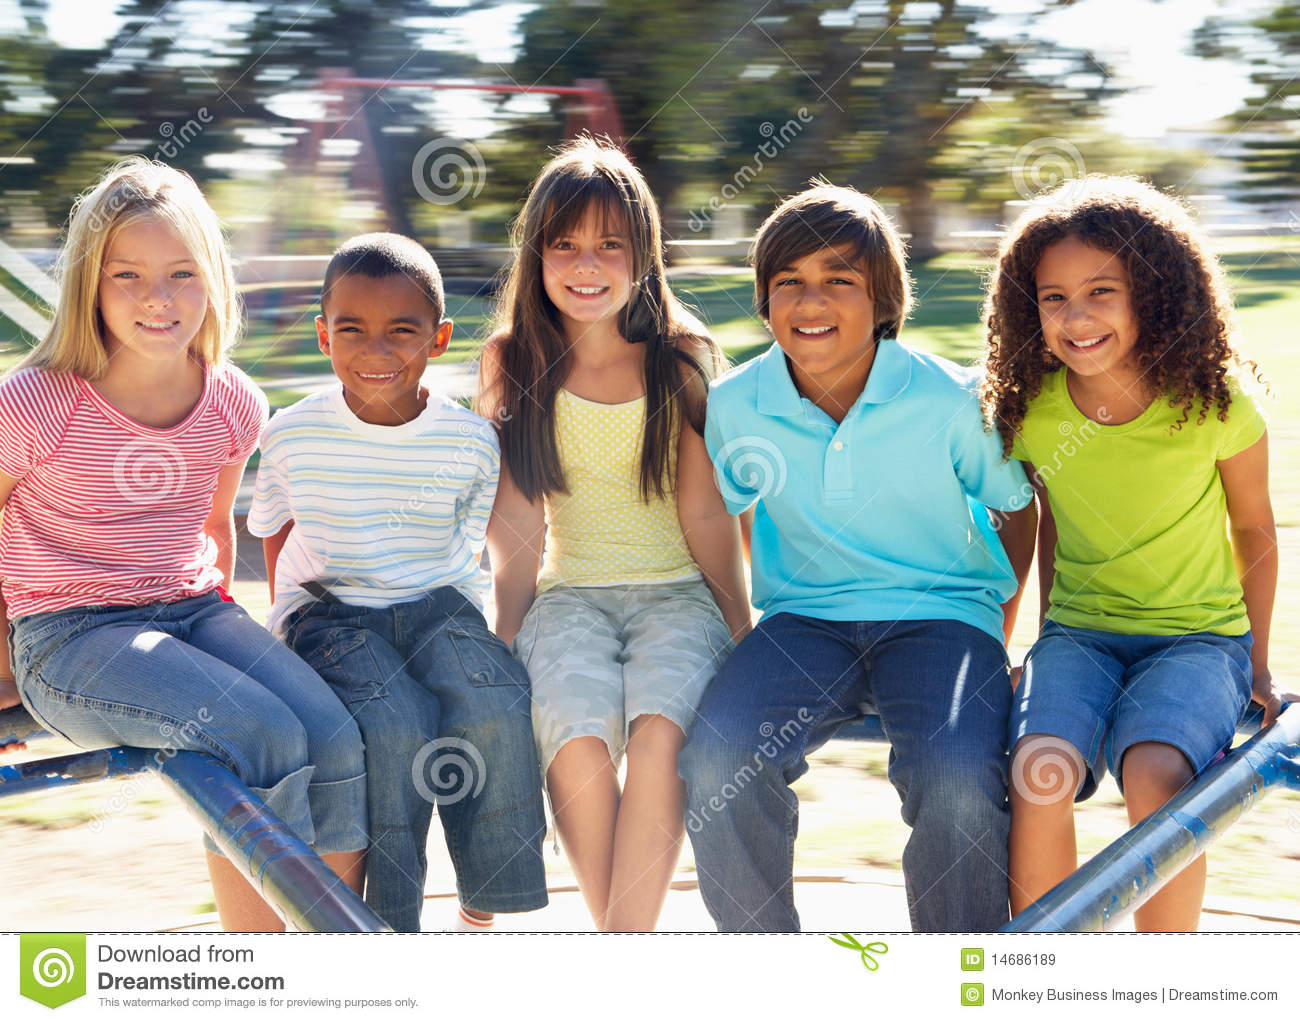 Download Children Riding On Roundabout In Playground Stock Image - Image of movement, outdoors: 14686189